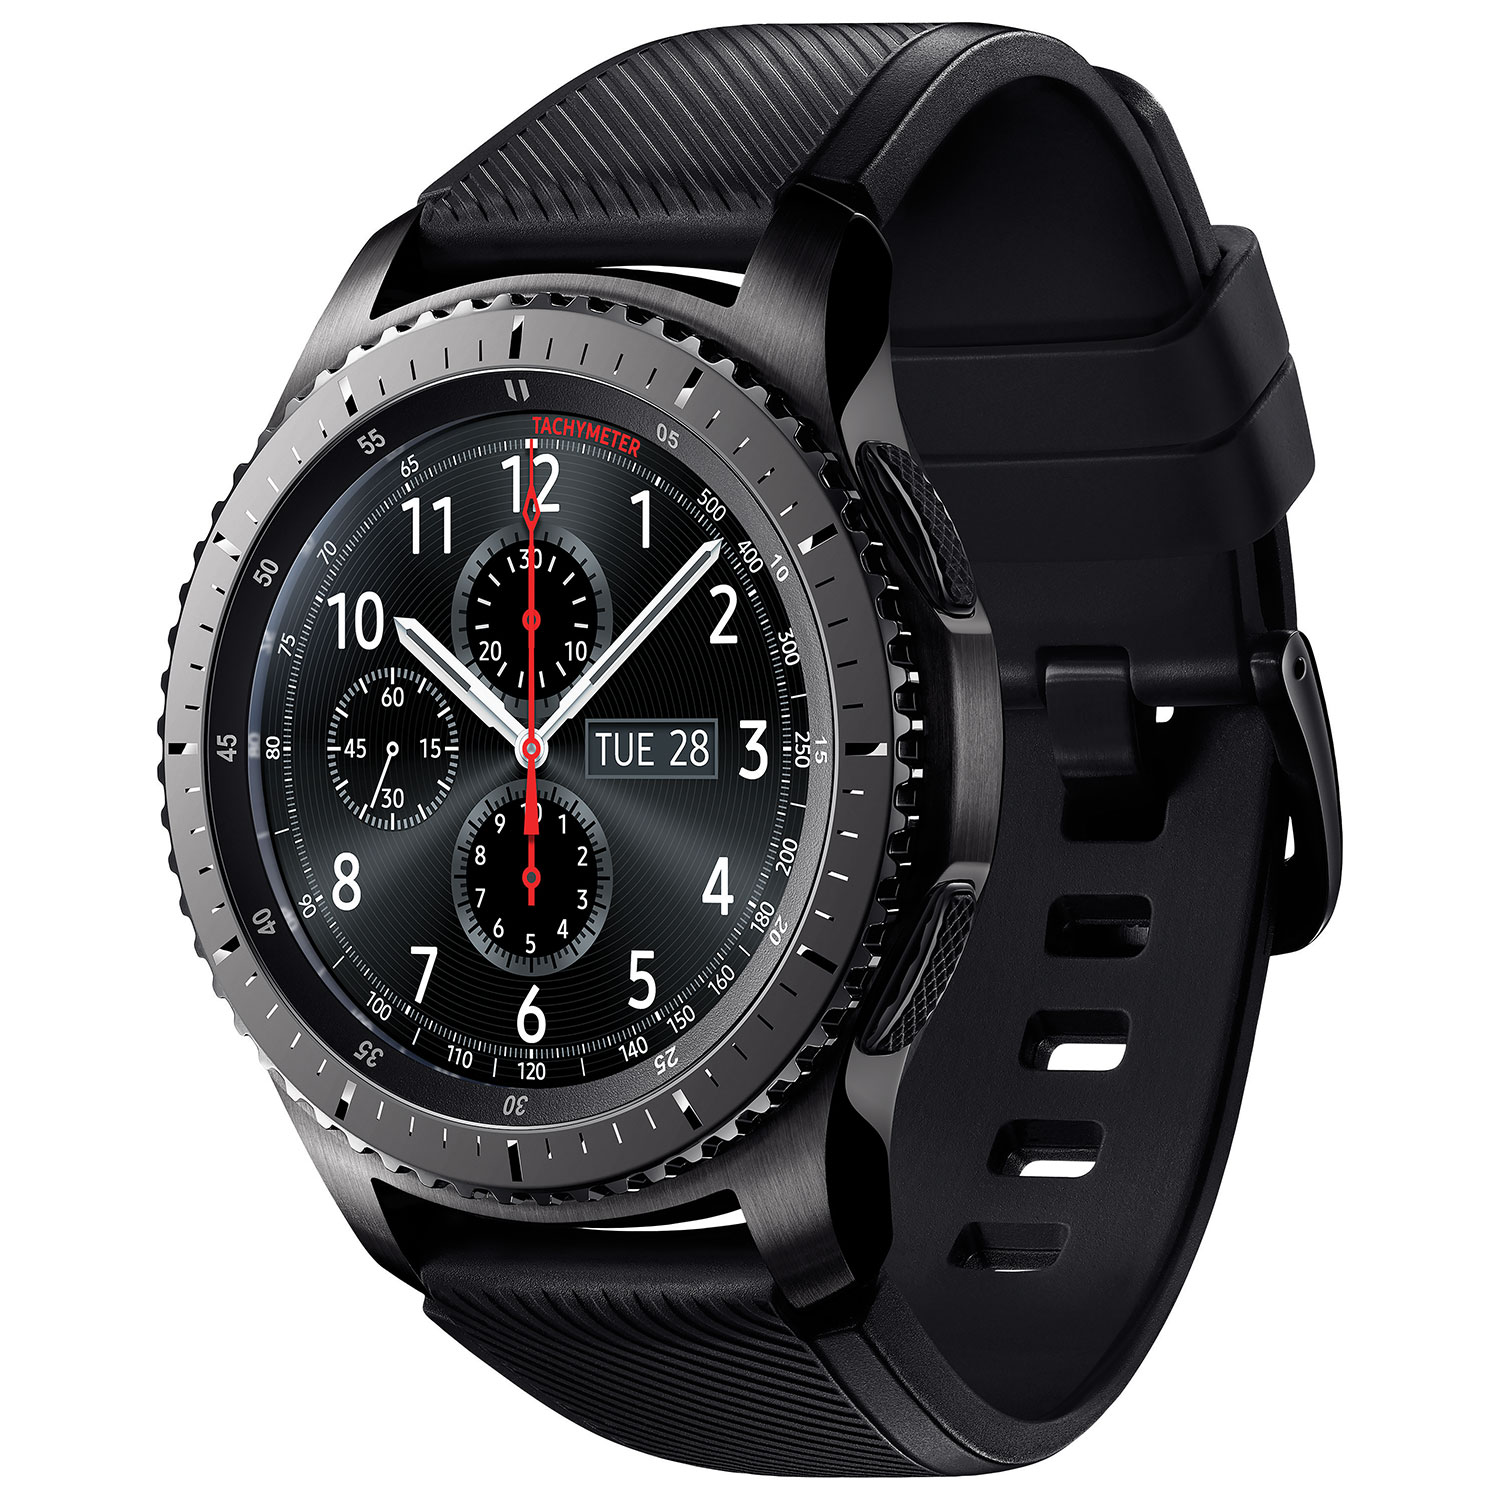 samsung real watches watch gear infinity for your face smartwatches steel heart watchfaces